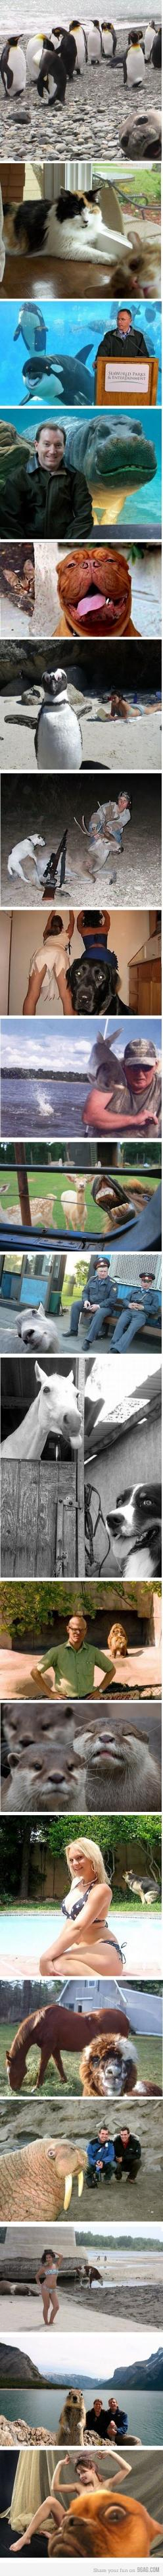 animal photobombs :): Photobombing Animals, Photo Bombs, Funnies, Animals Photobombing, Animalphotobombs, So Funny